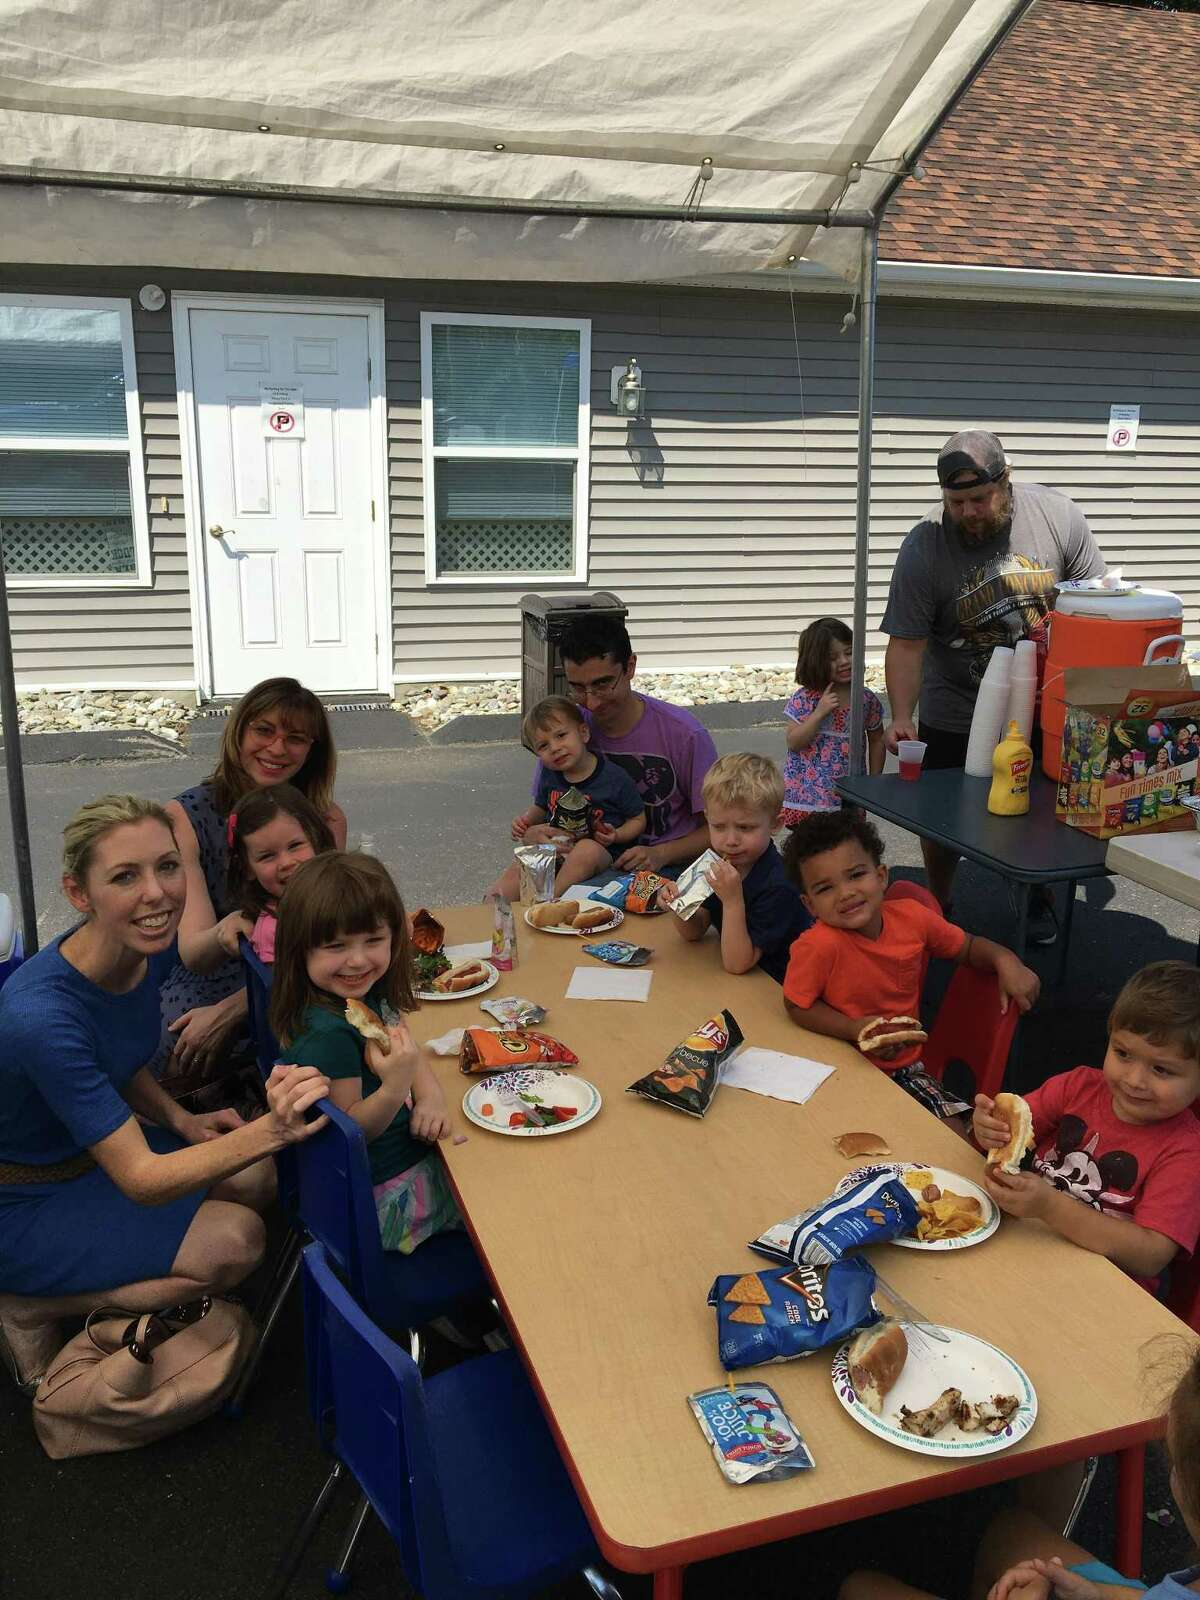 Fun times at Seymour Day Care Center